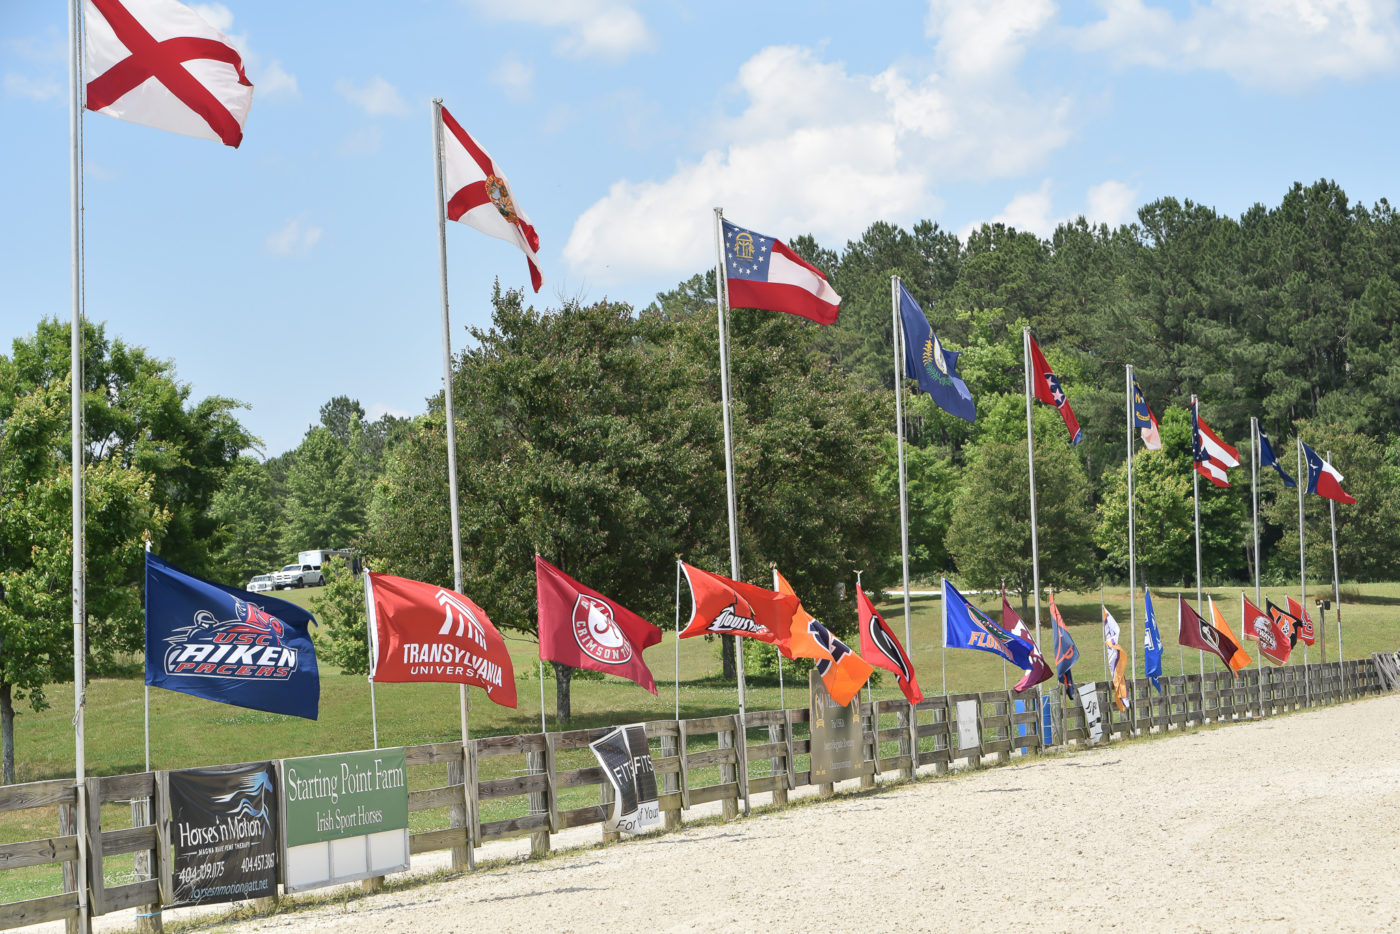 The State flags and College/University flags in the main arena. USEA/Kate Lokey photo.